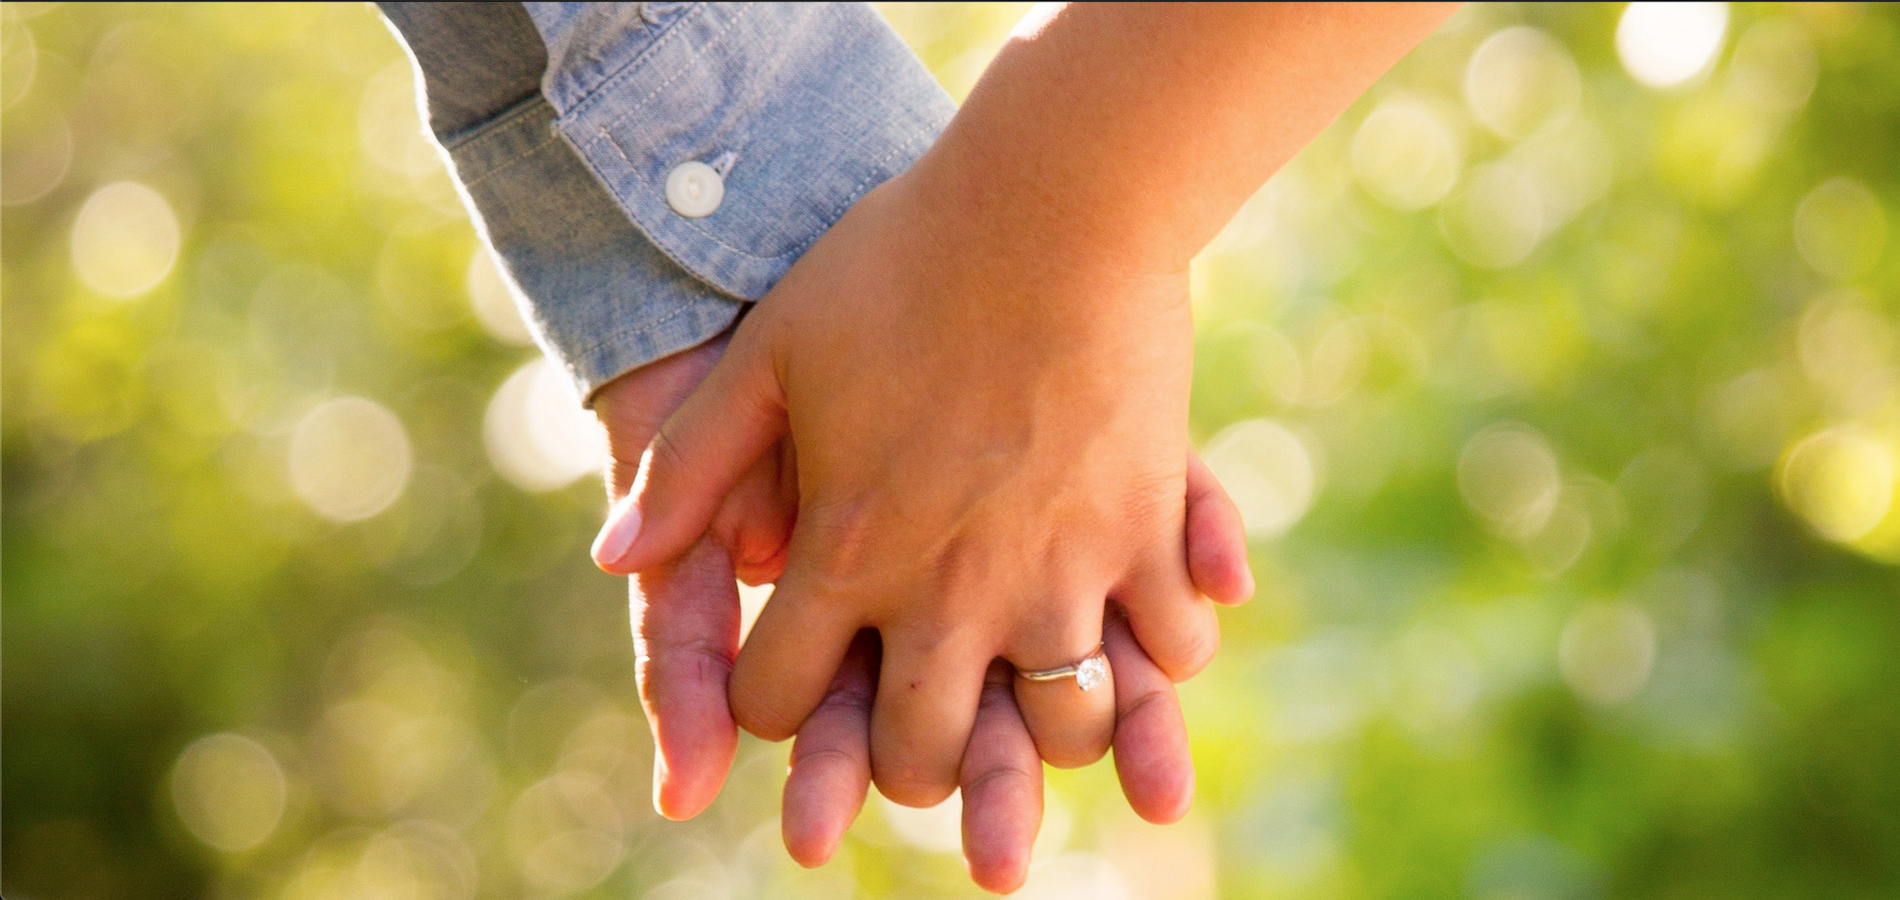 Why Can't Orthodox Couples Even Hold Hands During The Period of Separation?